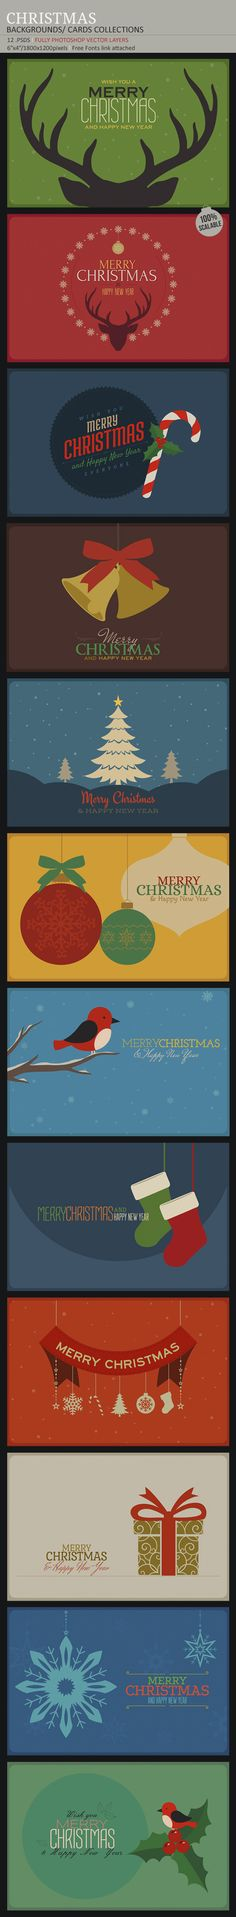 Weihnachten von creative artx, via Behance - Graphic Design Inspiration Board -